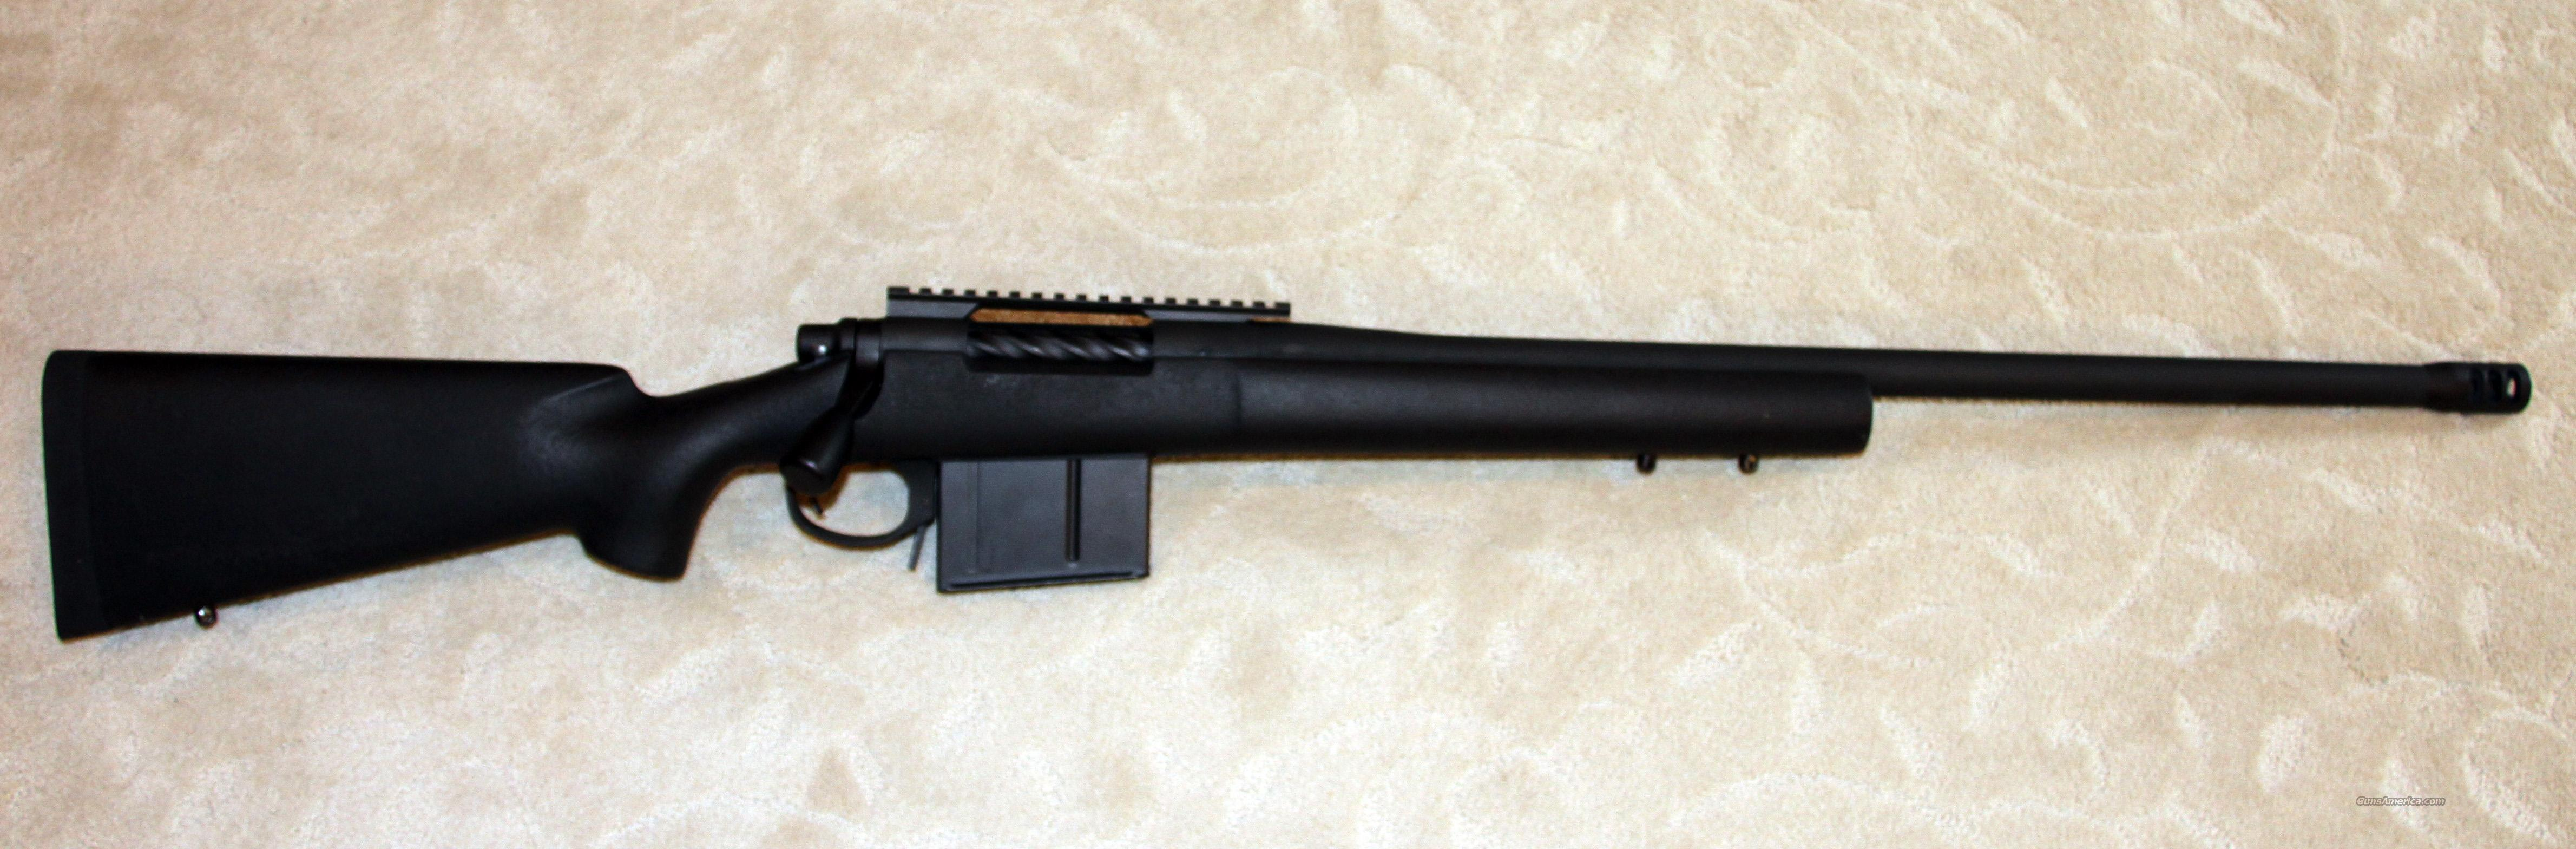 Remington 338 Lapua Tactical Rifle  Guns > Rifles > Remington Rifles - Modern > Model 700 > Tactical